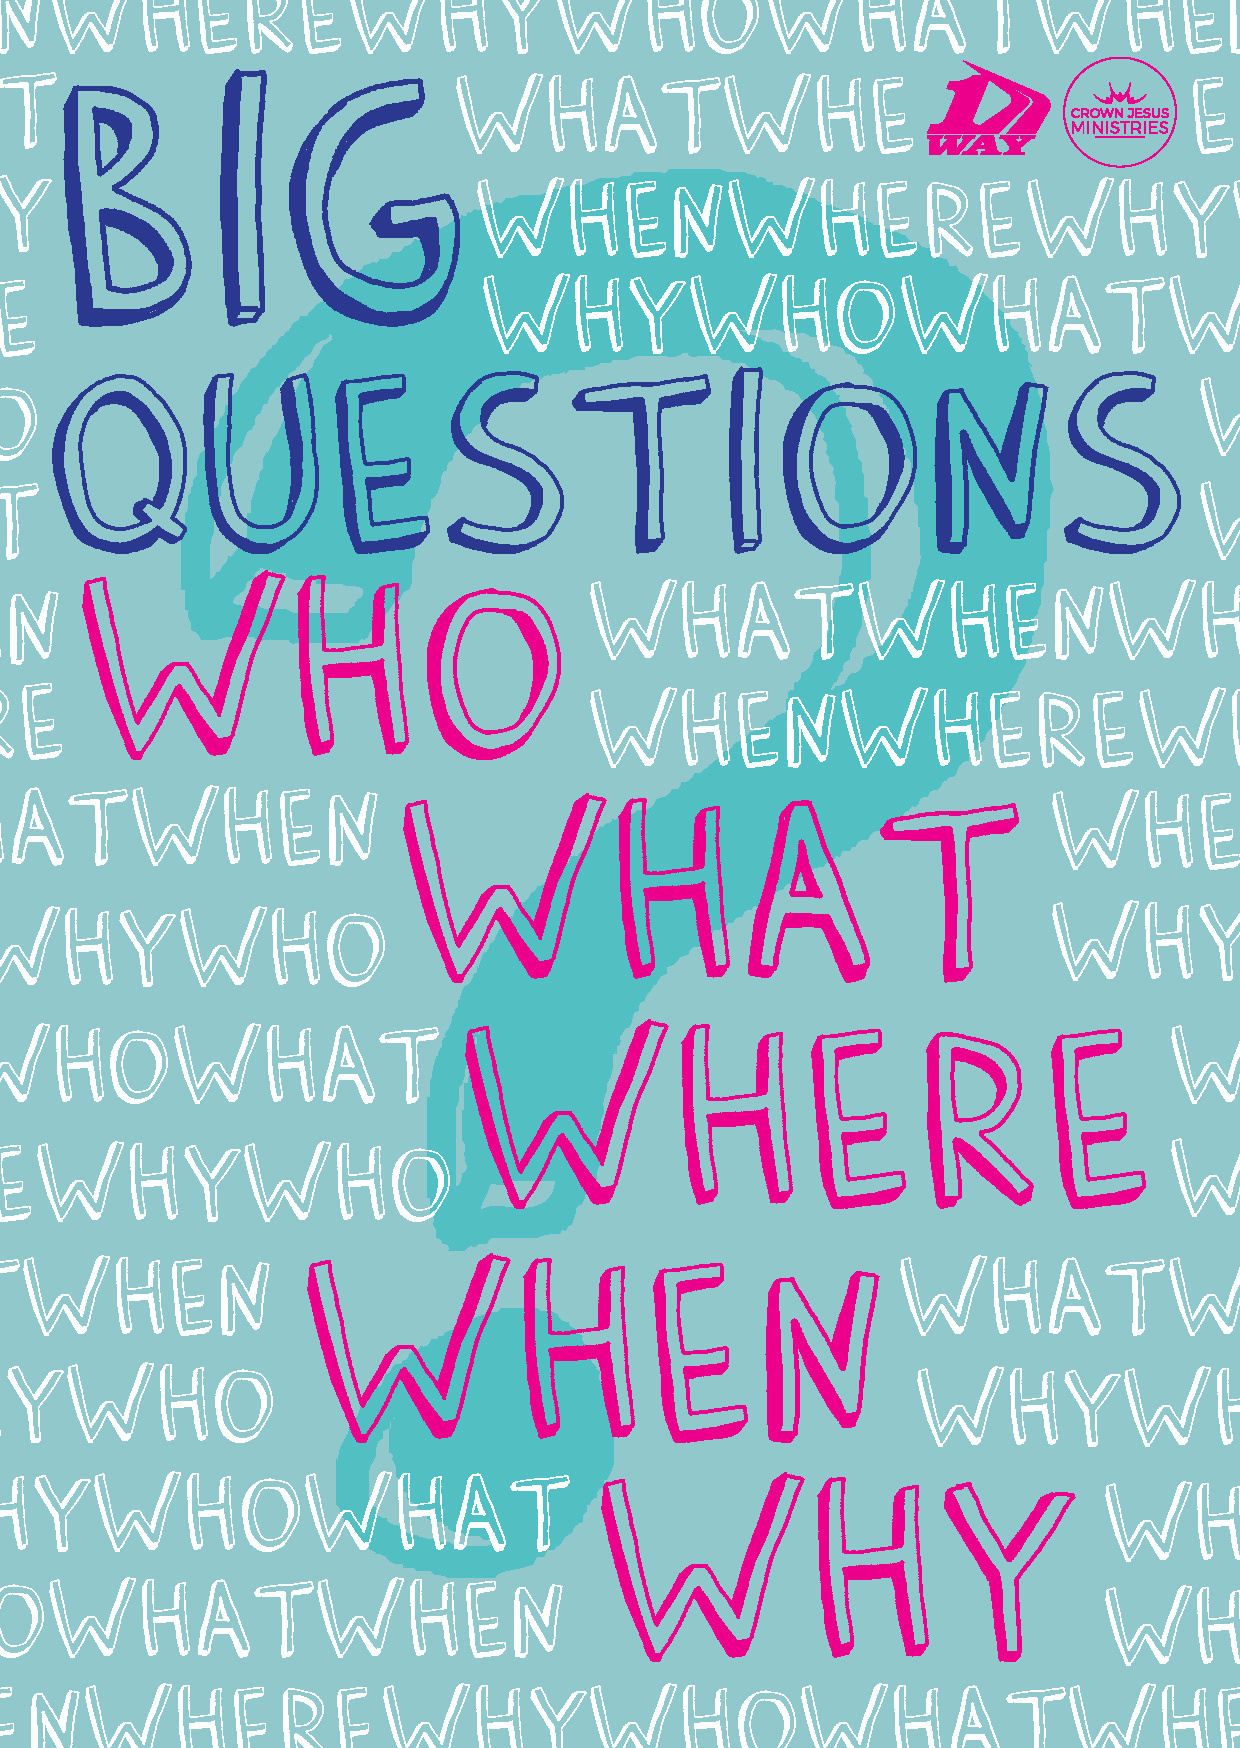 Big Questions - Who, What, Where, When, Why?